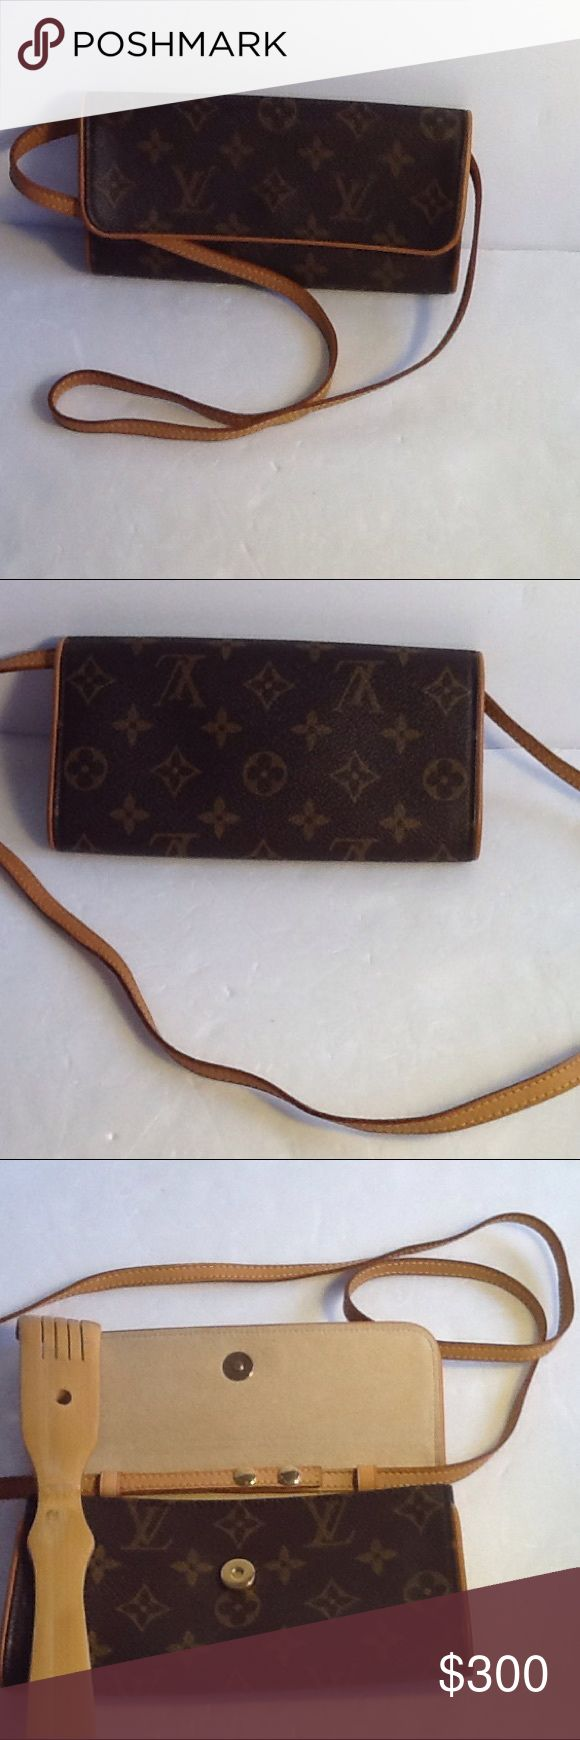 Authentic Louis Vuitton Pochette Twin Monogram Bag Leather and strap showed light wearing. The bag was bade in France with a date code CA 1001. The bag came with a shopping bag. The dimension is 7, 4 and 1. Over all the bag us in a good condition. Louis Vuitton Bags Crossbody Bags